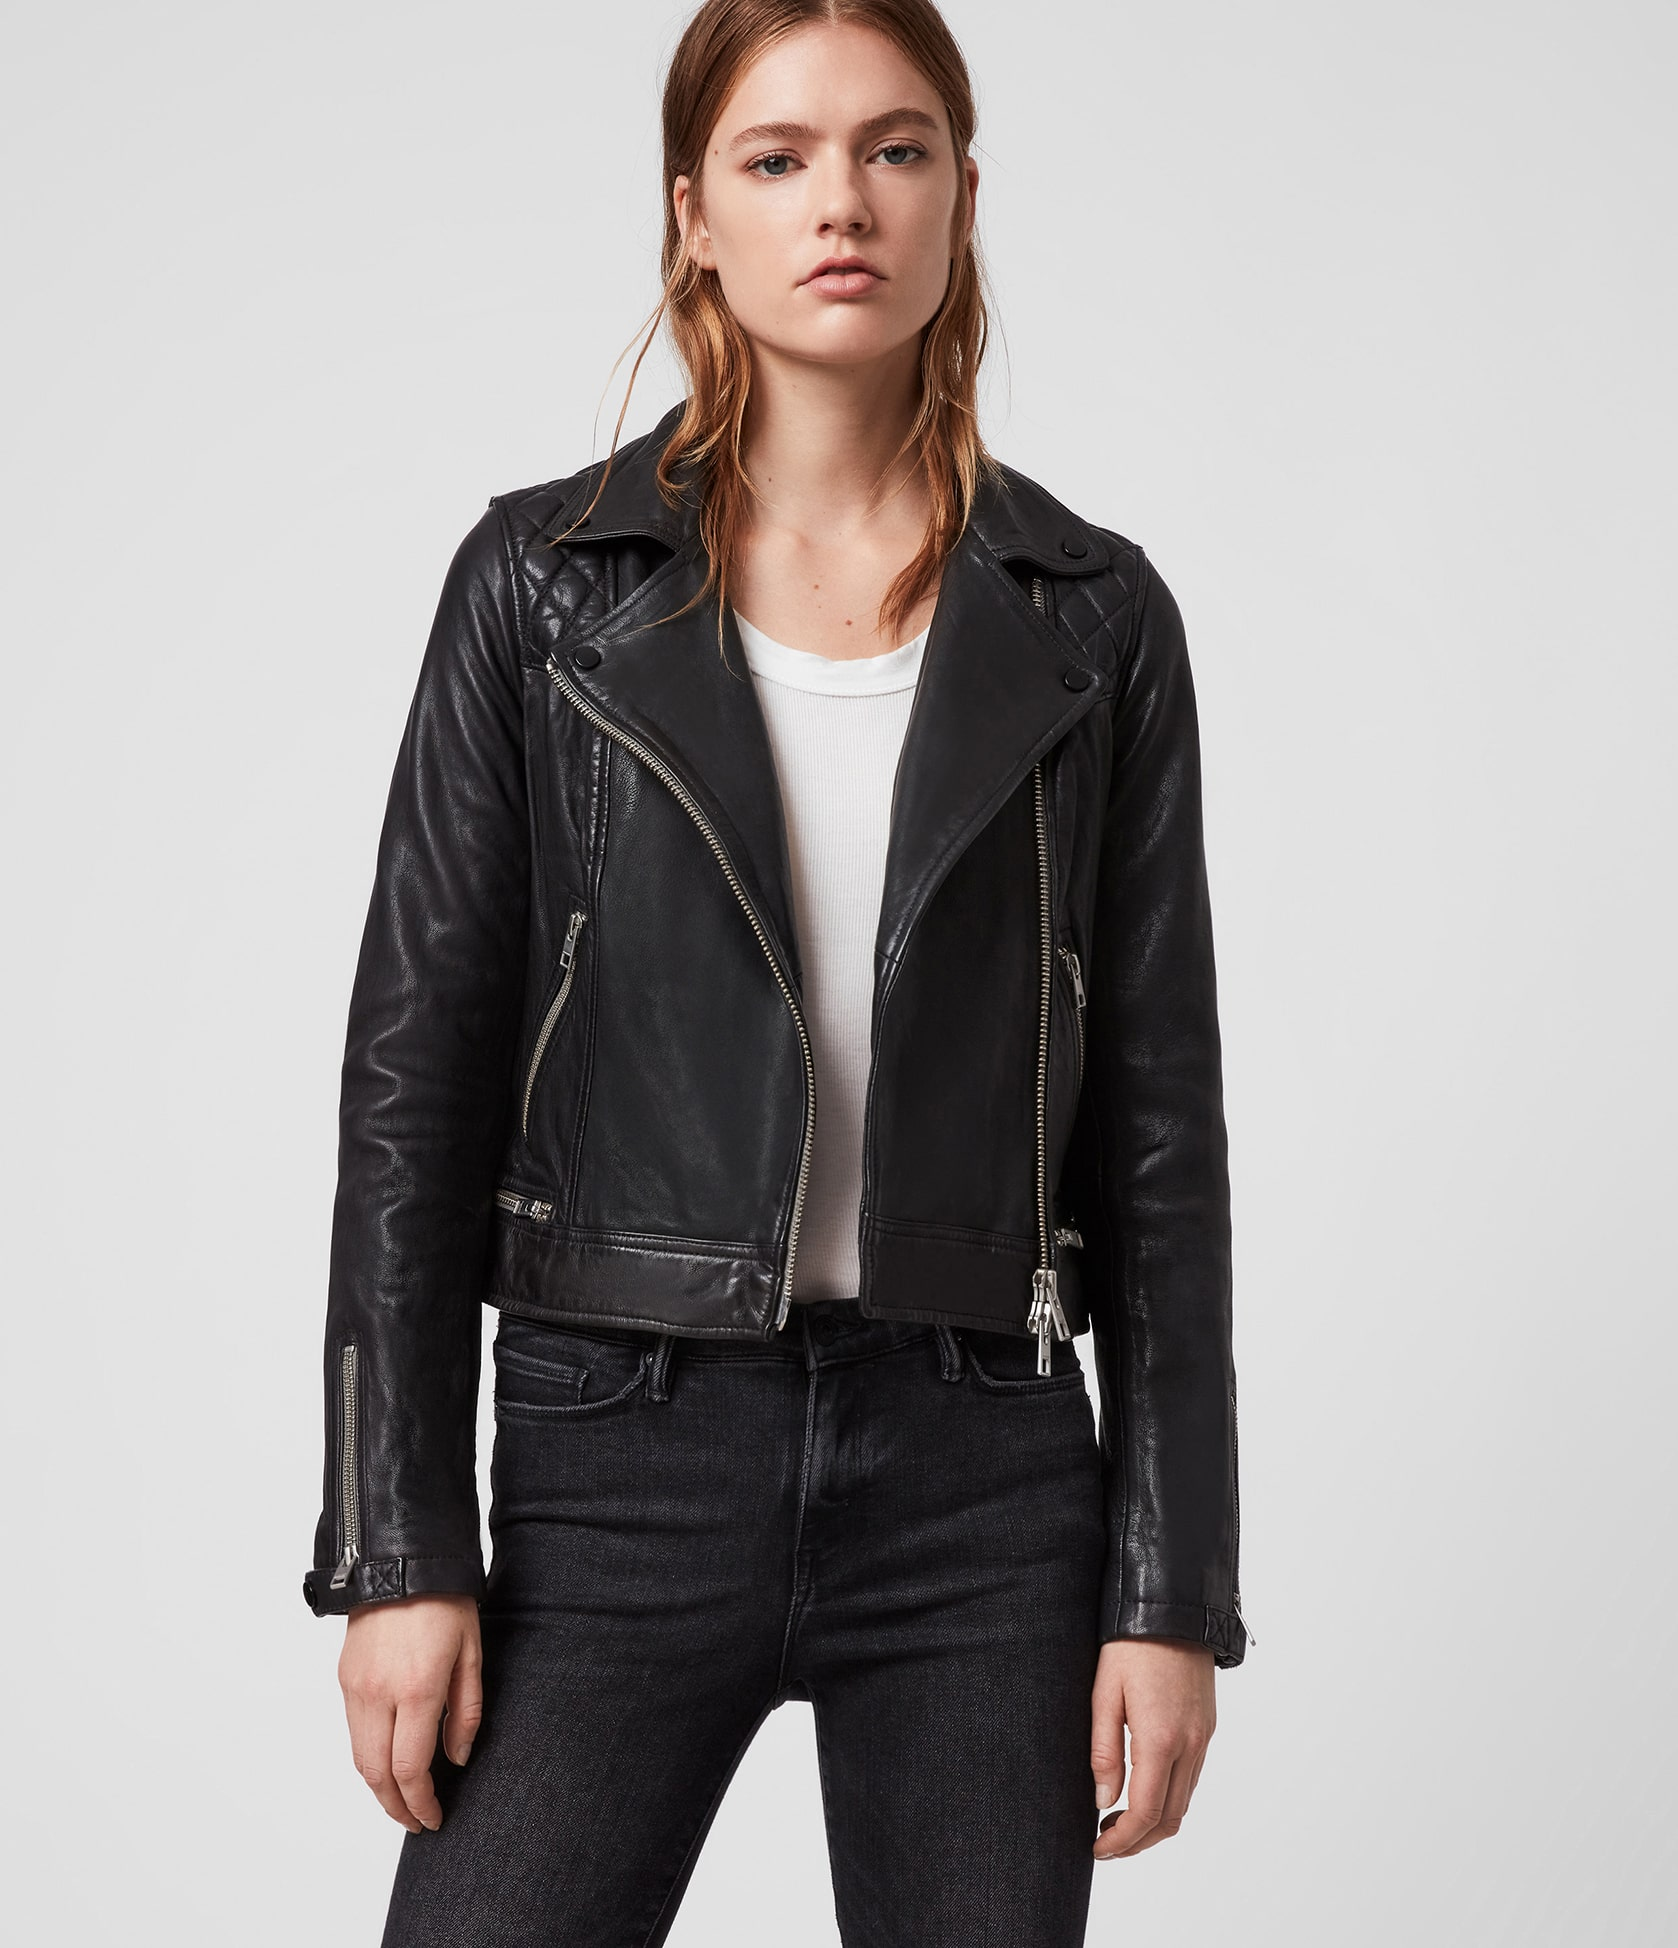 Women's Conroy Leather Jacket - Front View